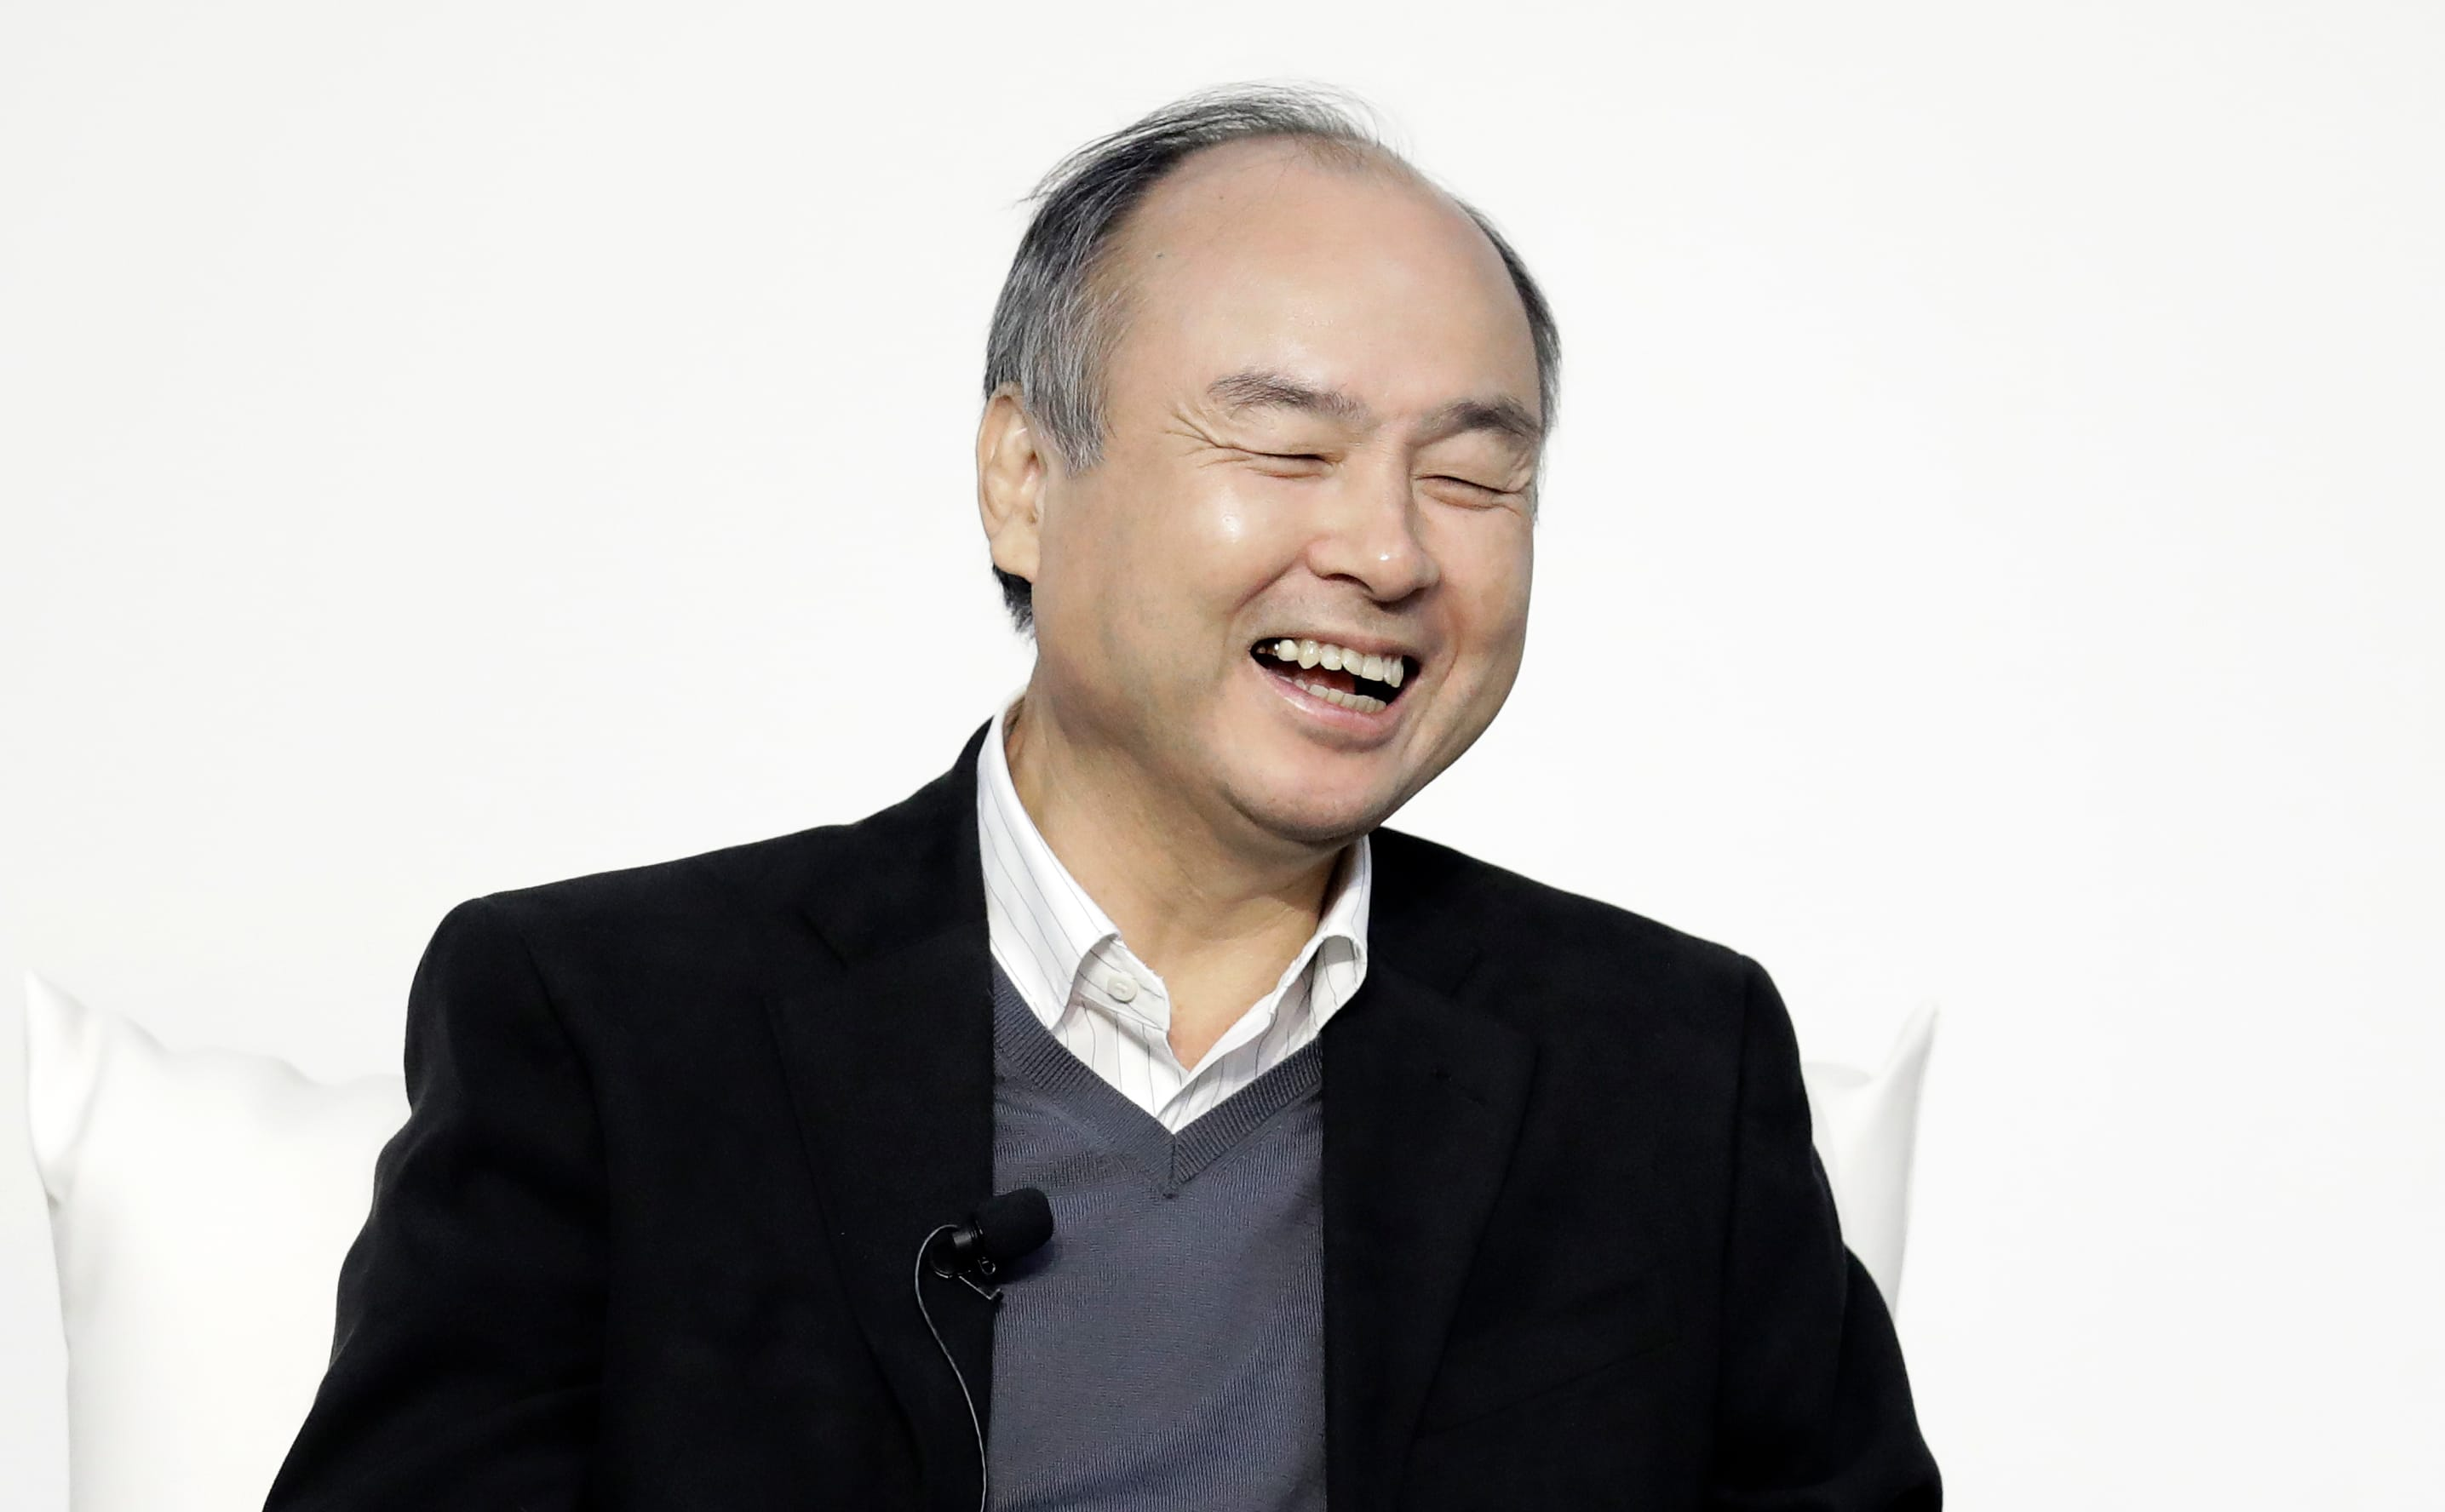 SoftBank shares skyrocket in Japan after judge approves T-Mobile and Sprint merger